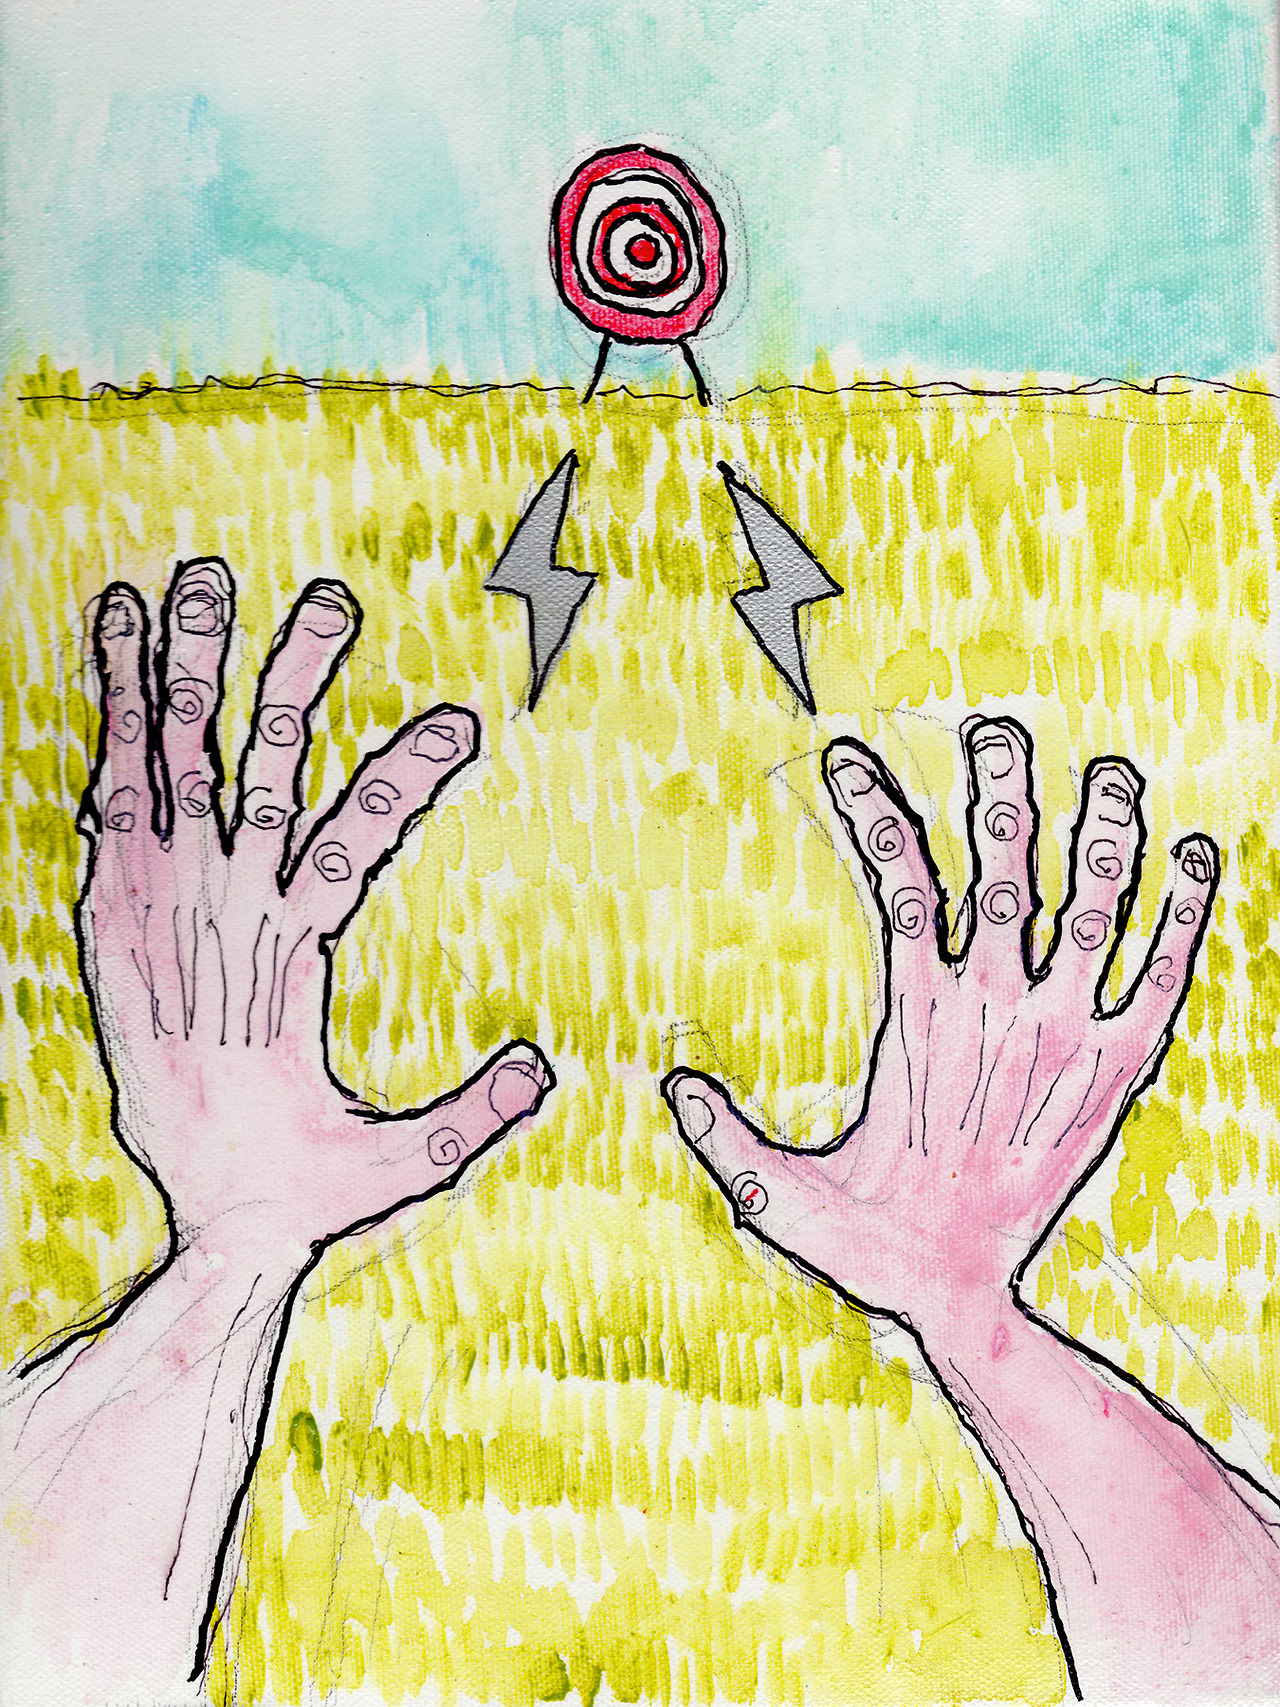 "4/2/13 -  FPS LARPer.     I needed to mix it up a little.   9"" x 12"" Acrylic paint, sharpie, pencil, polyurethane on canvas.   Available to purchase here:  http://taylorwinder.bigcartel.com    Prints available here:  http://society6.com/taylorwinder"